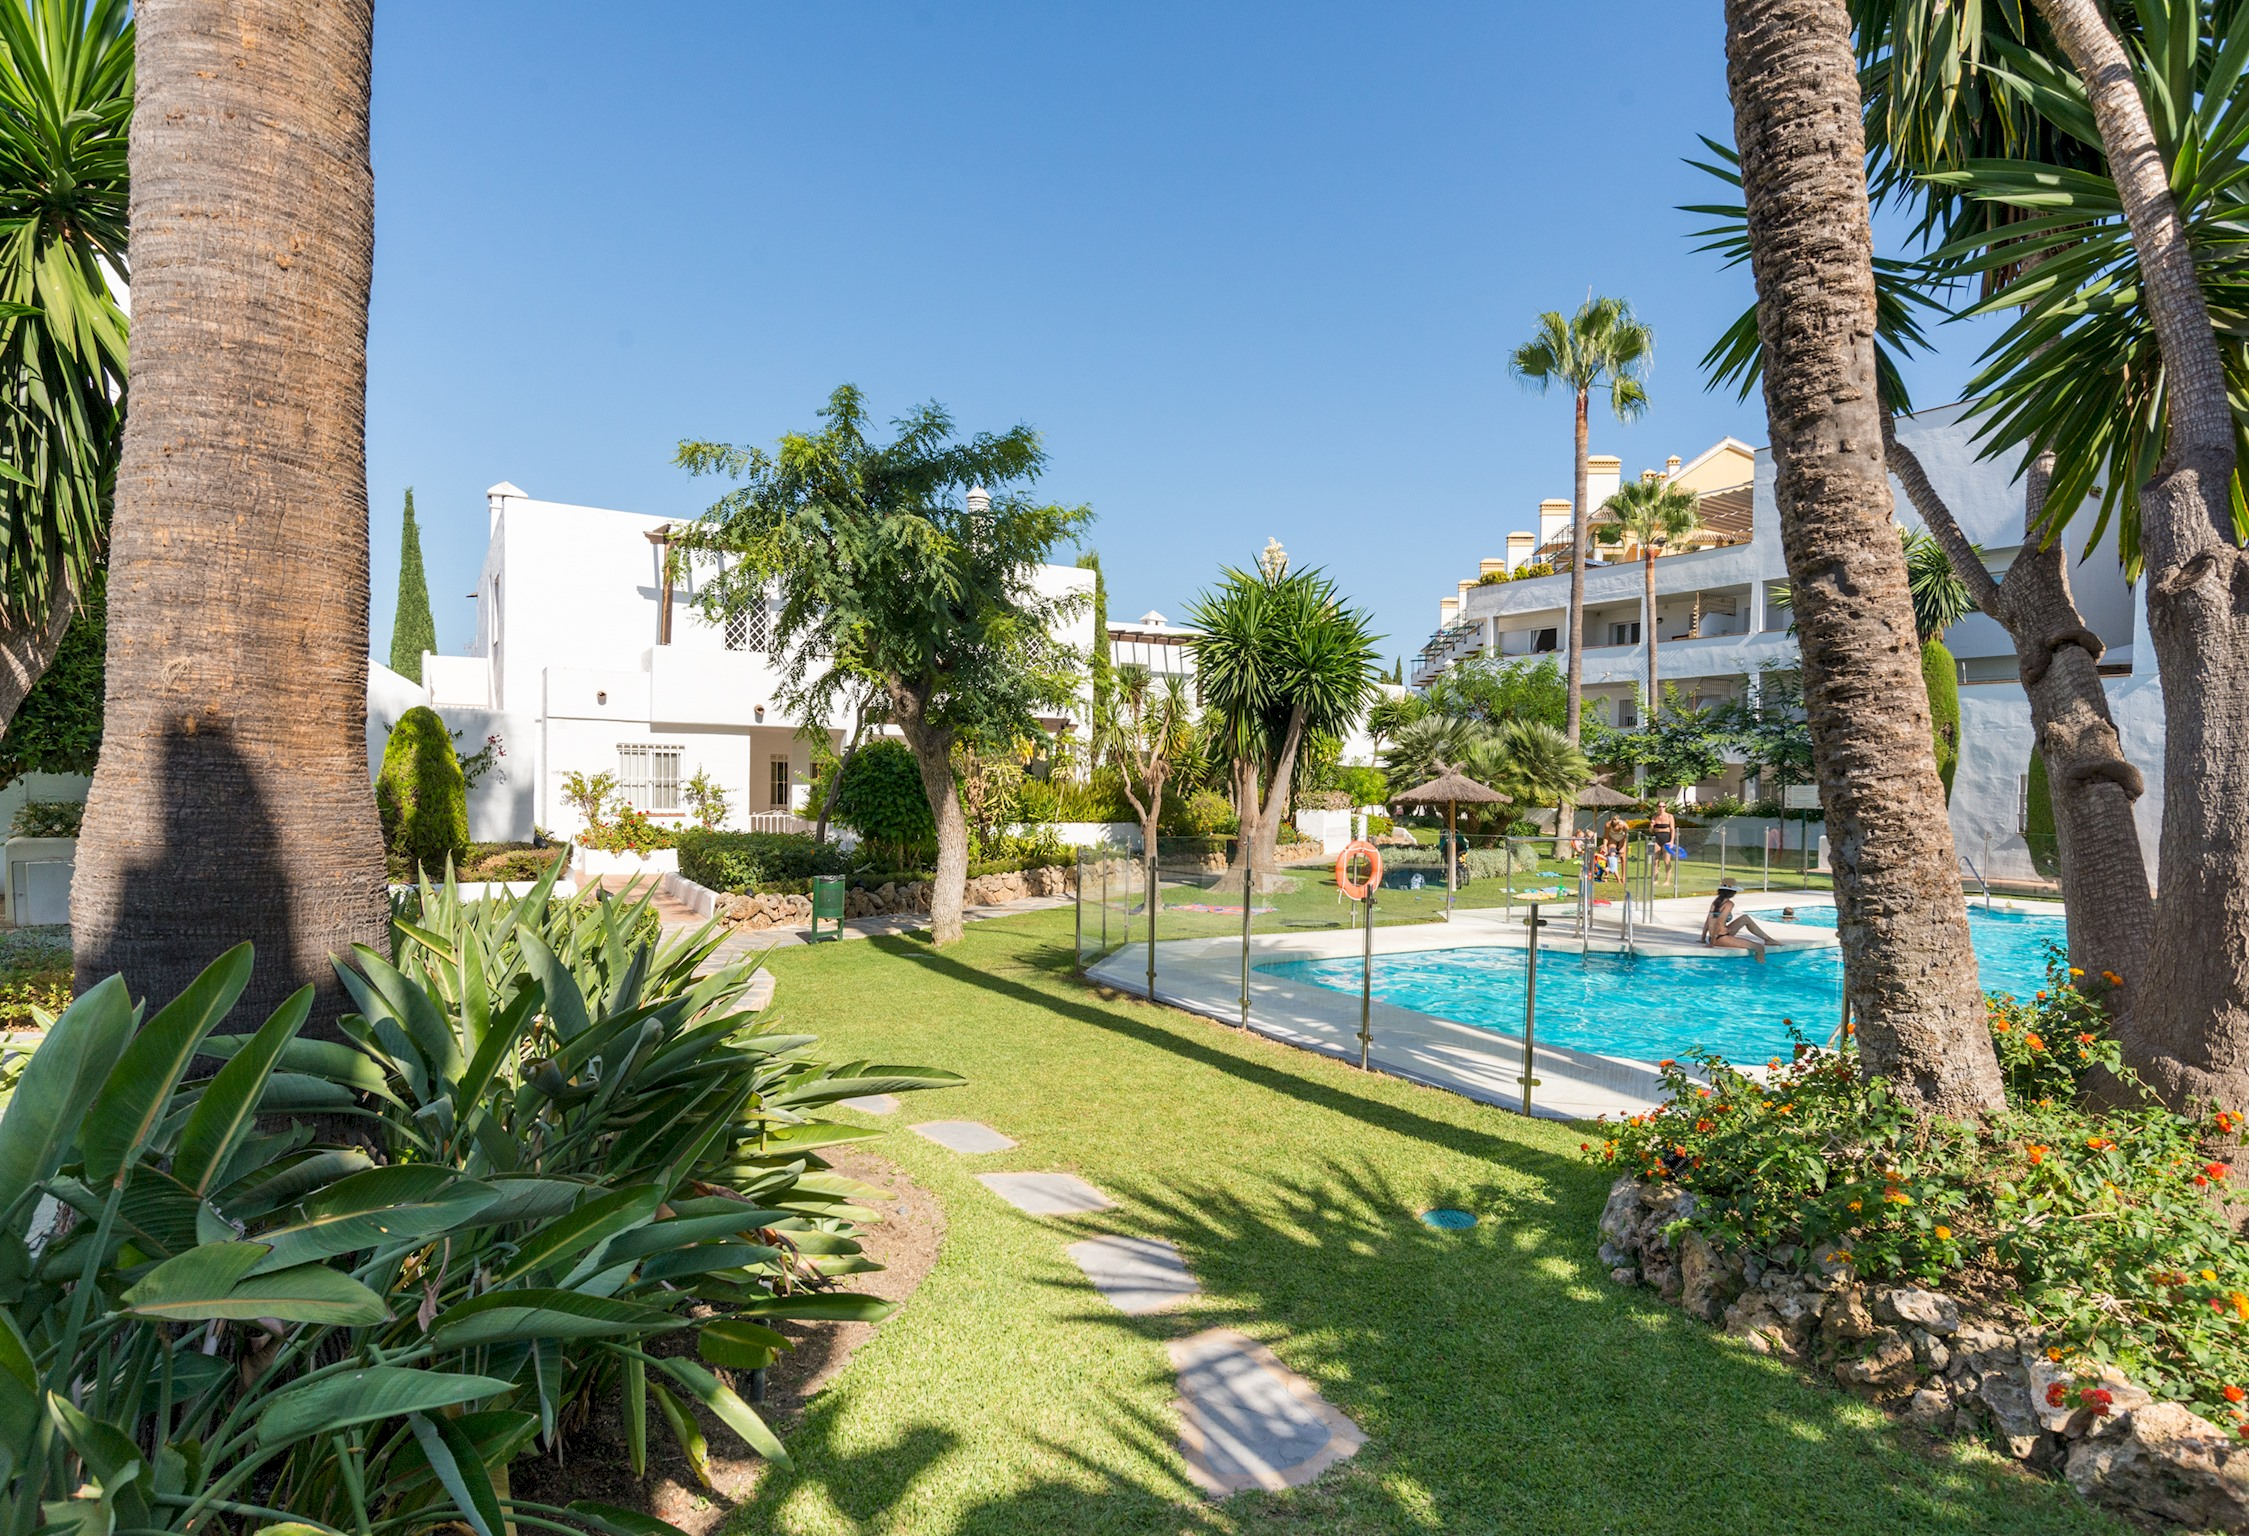 Apartment MalagaSuite Marbella Solarium   Pool photo 21307065